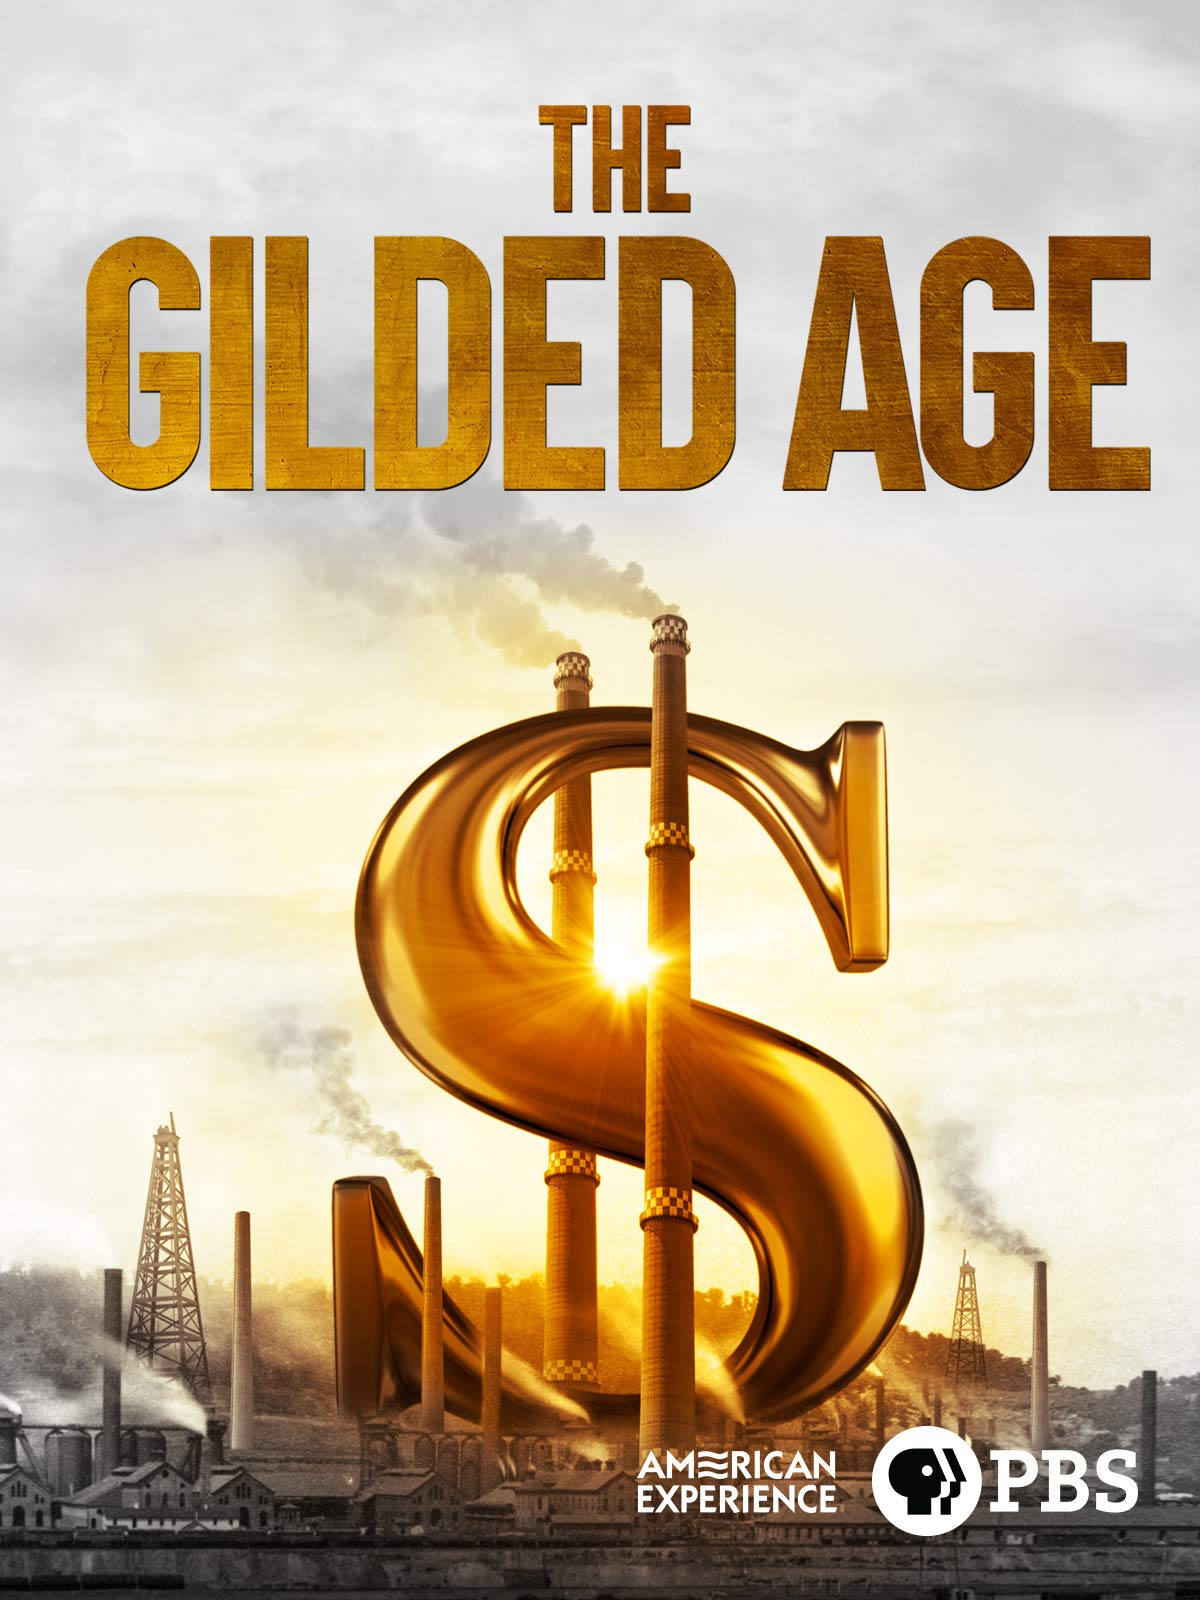 Amazon.com: American Experience:The Gilded Age: Oliver Platt, Sarah ...